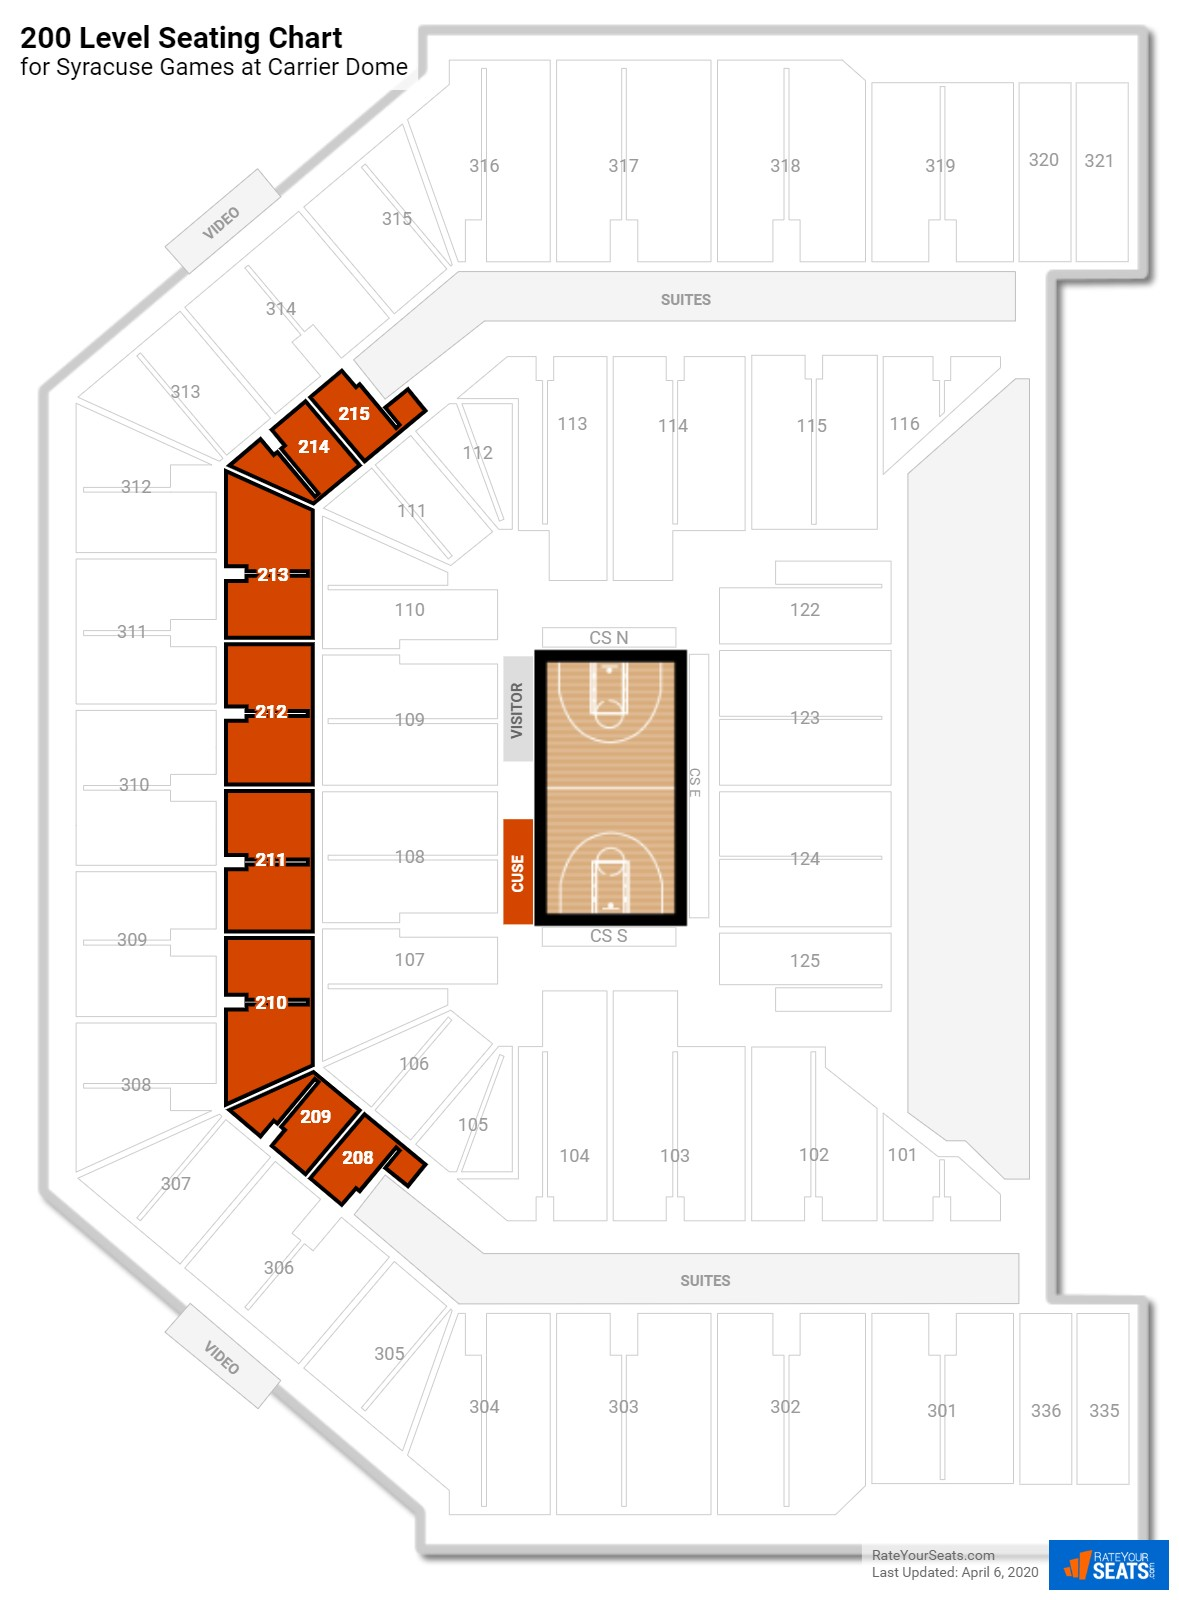 Carrier Dome 200 Level seating chart